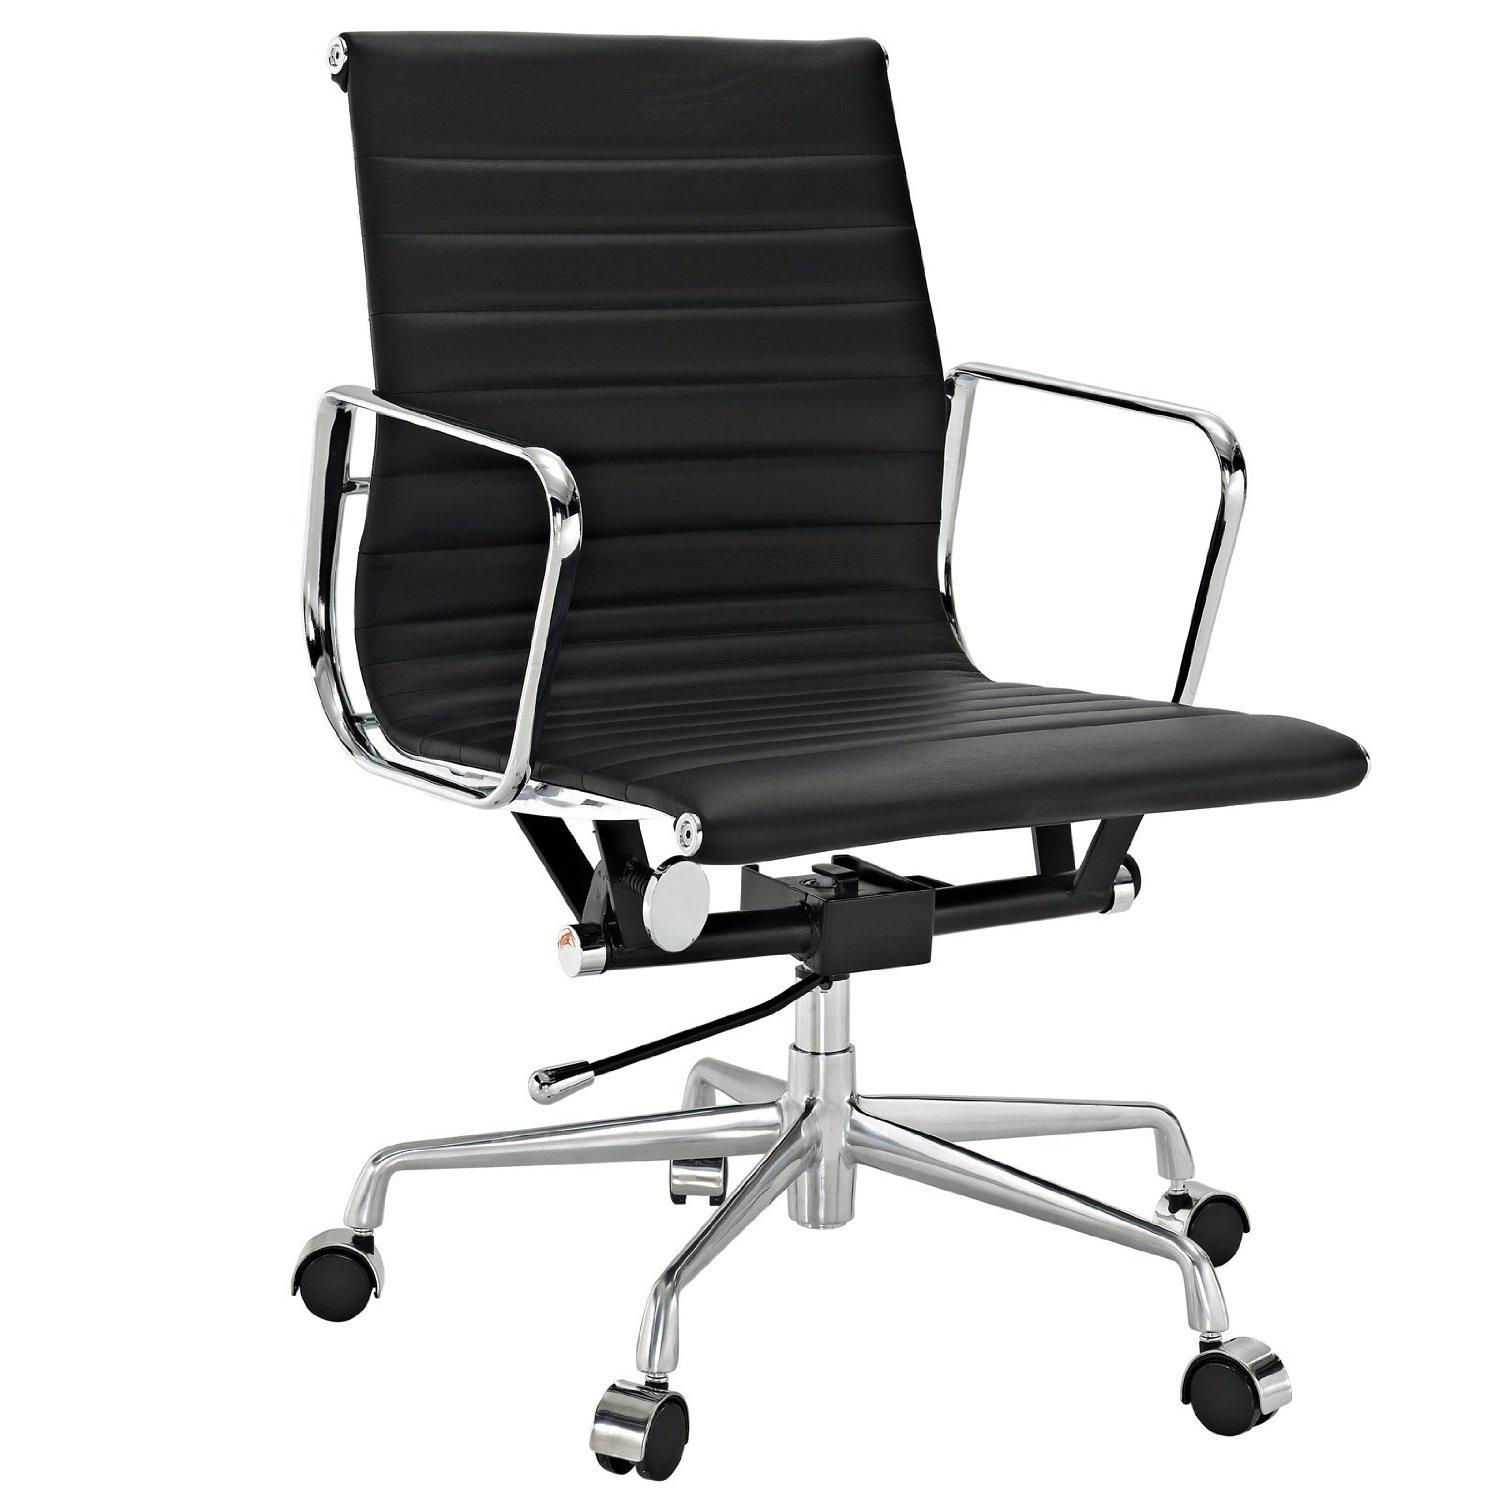 Modern leather office chair -  Office Chair In Black Genuine Leather View Larger